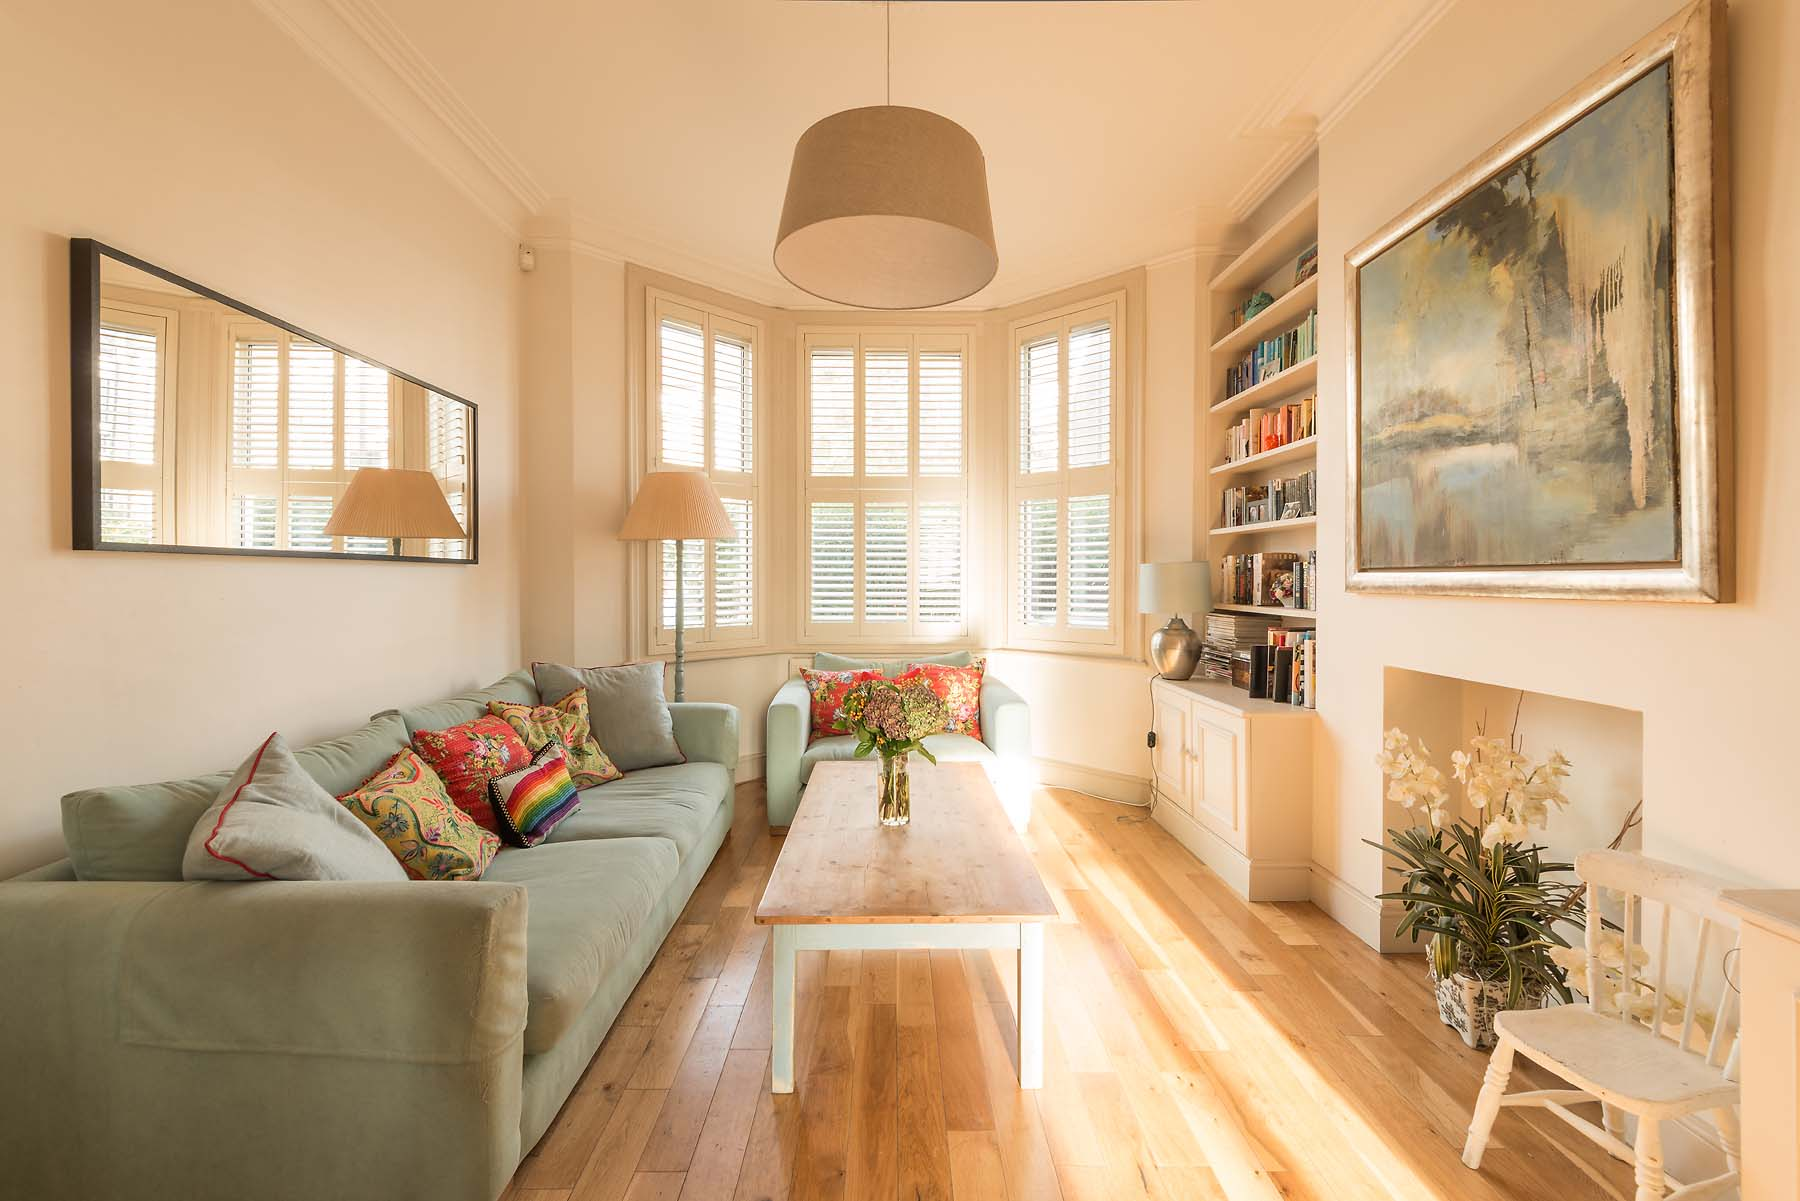 living-room-daylight-residential-property-photographer-london-14